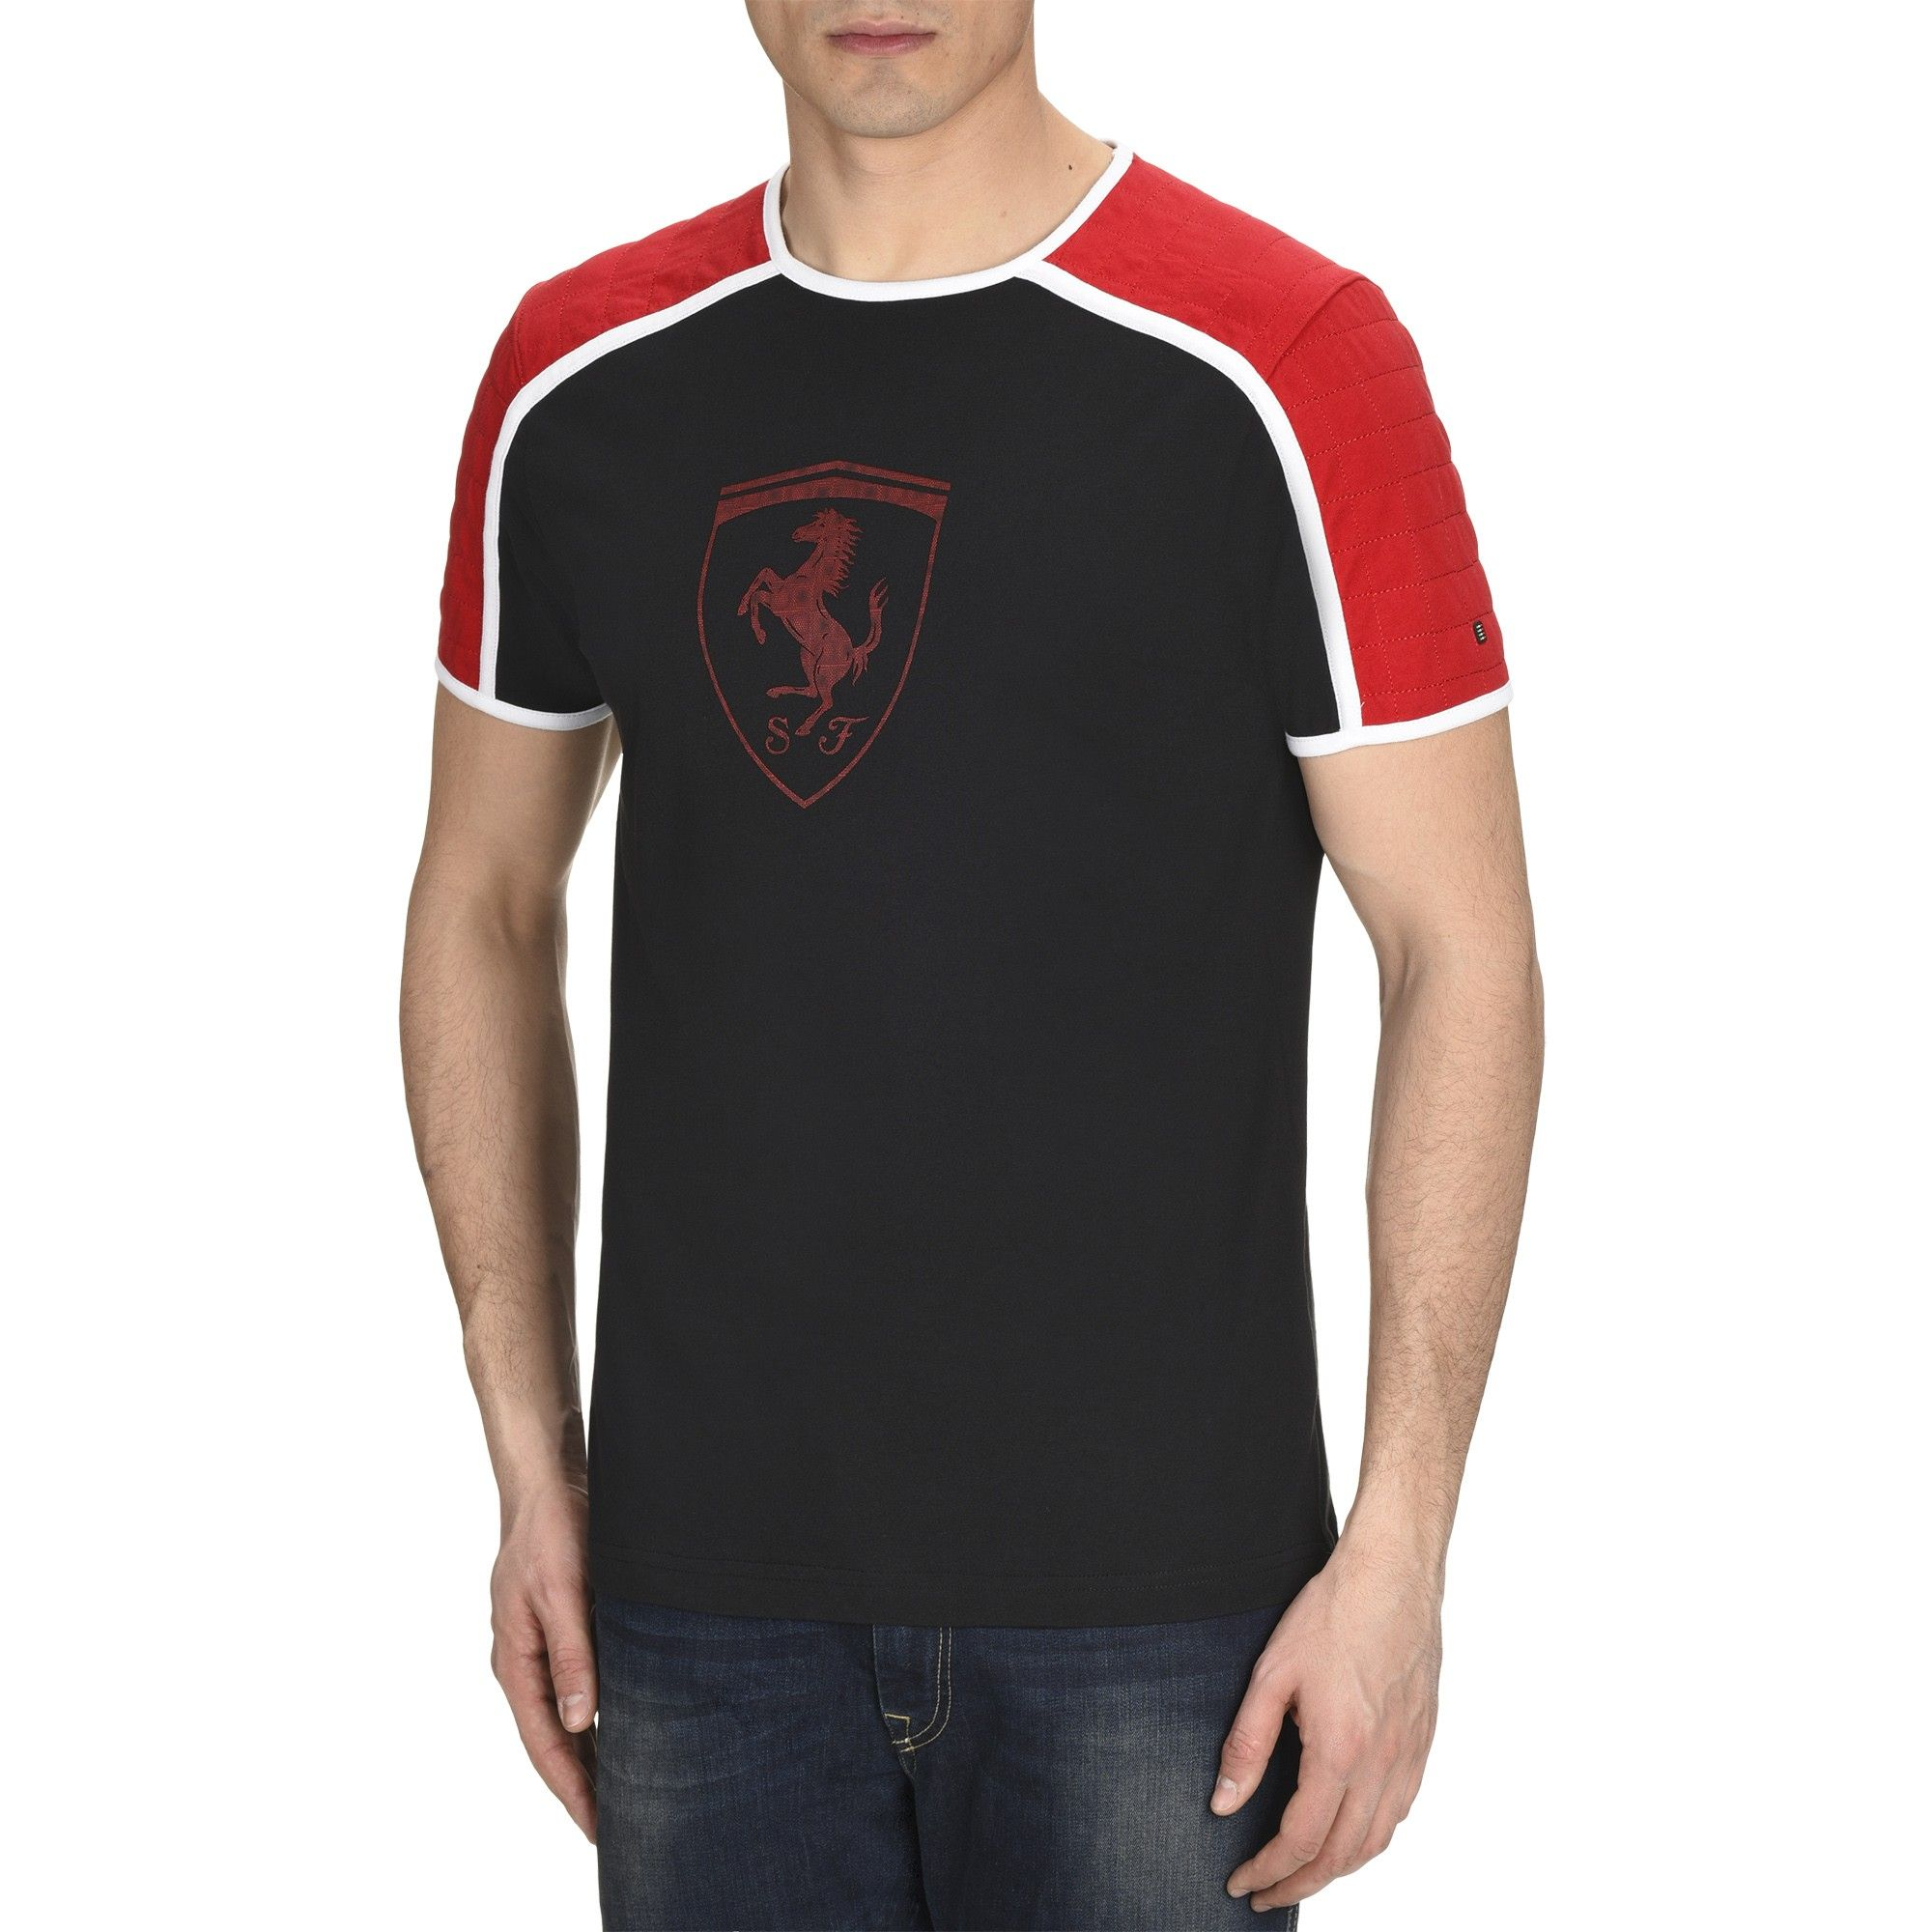 Genuine Ferrari T-Shirt In Red With Scuderia Shield On Front